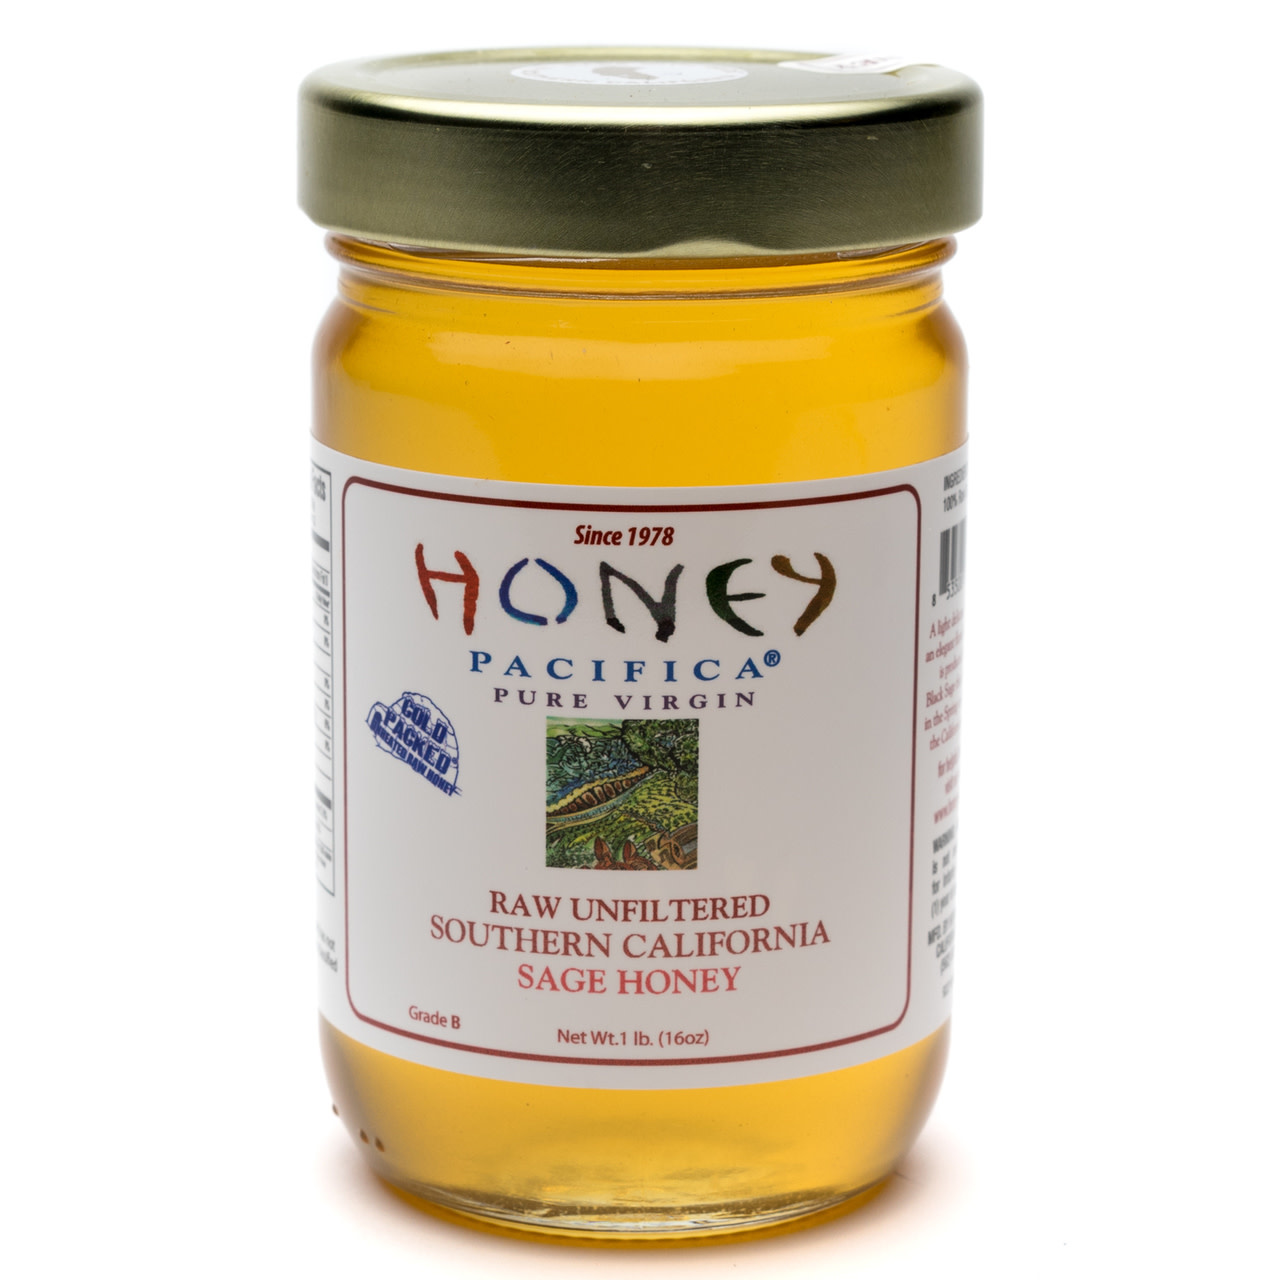 Honey Pacifica Raw Unfiltered Southern California Sage Honey